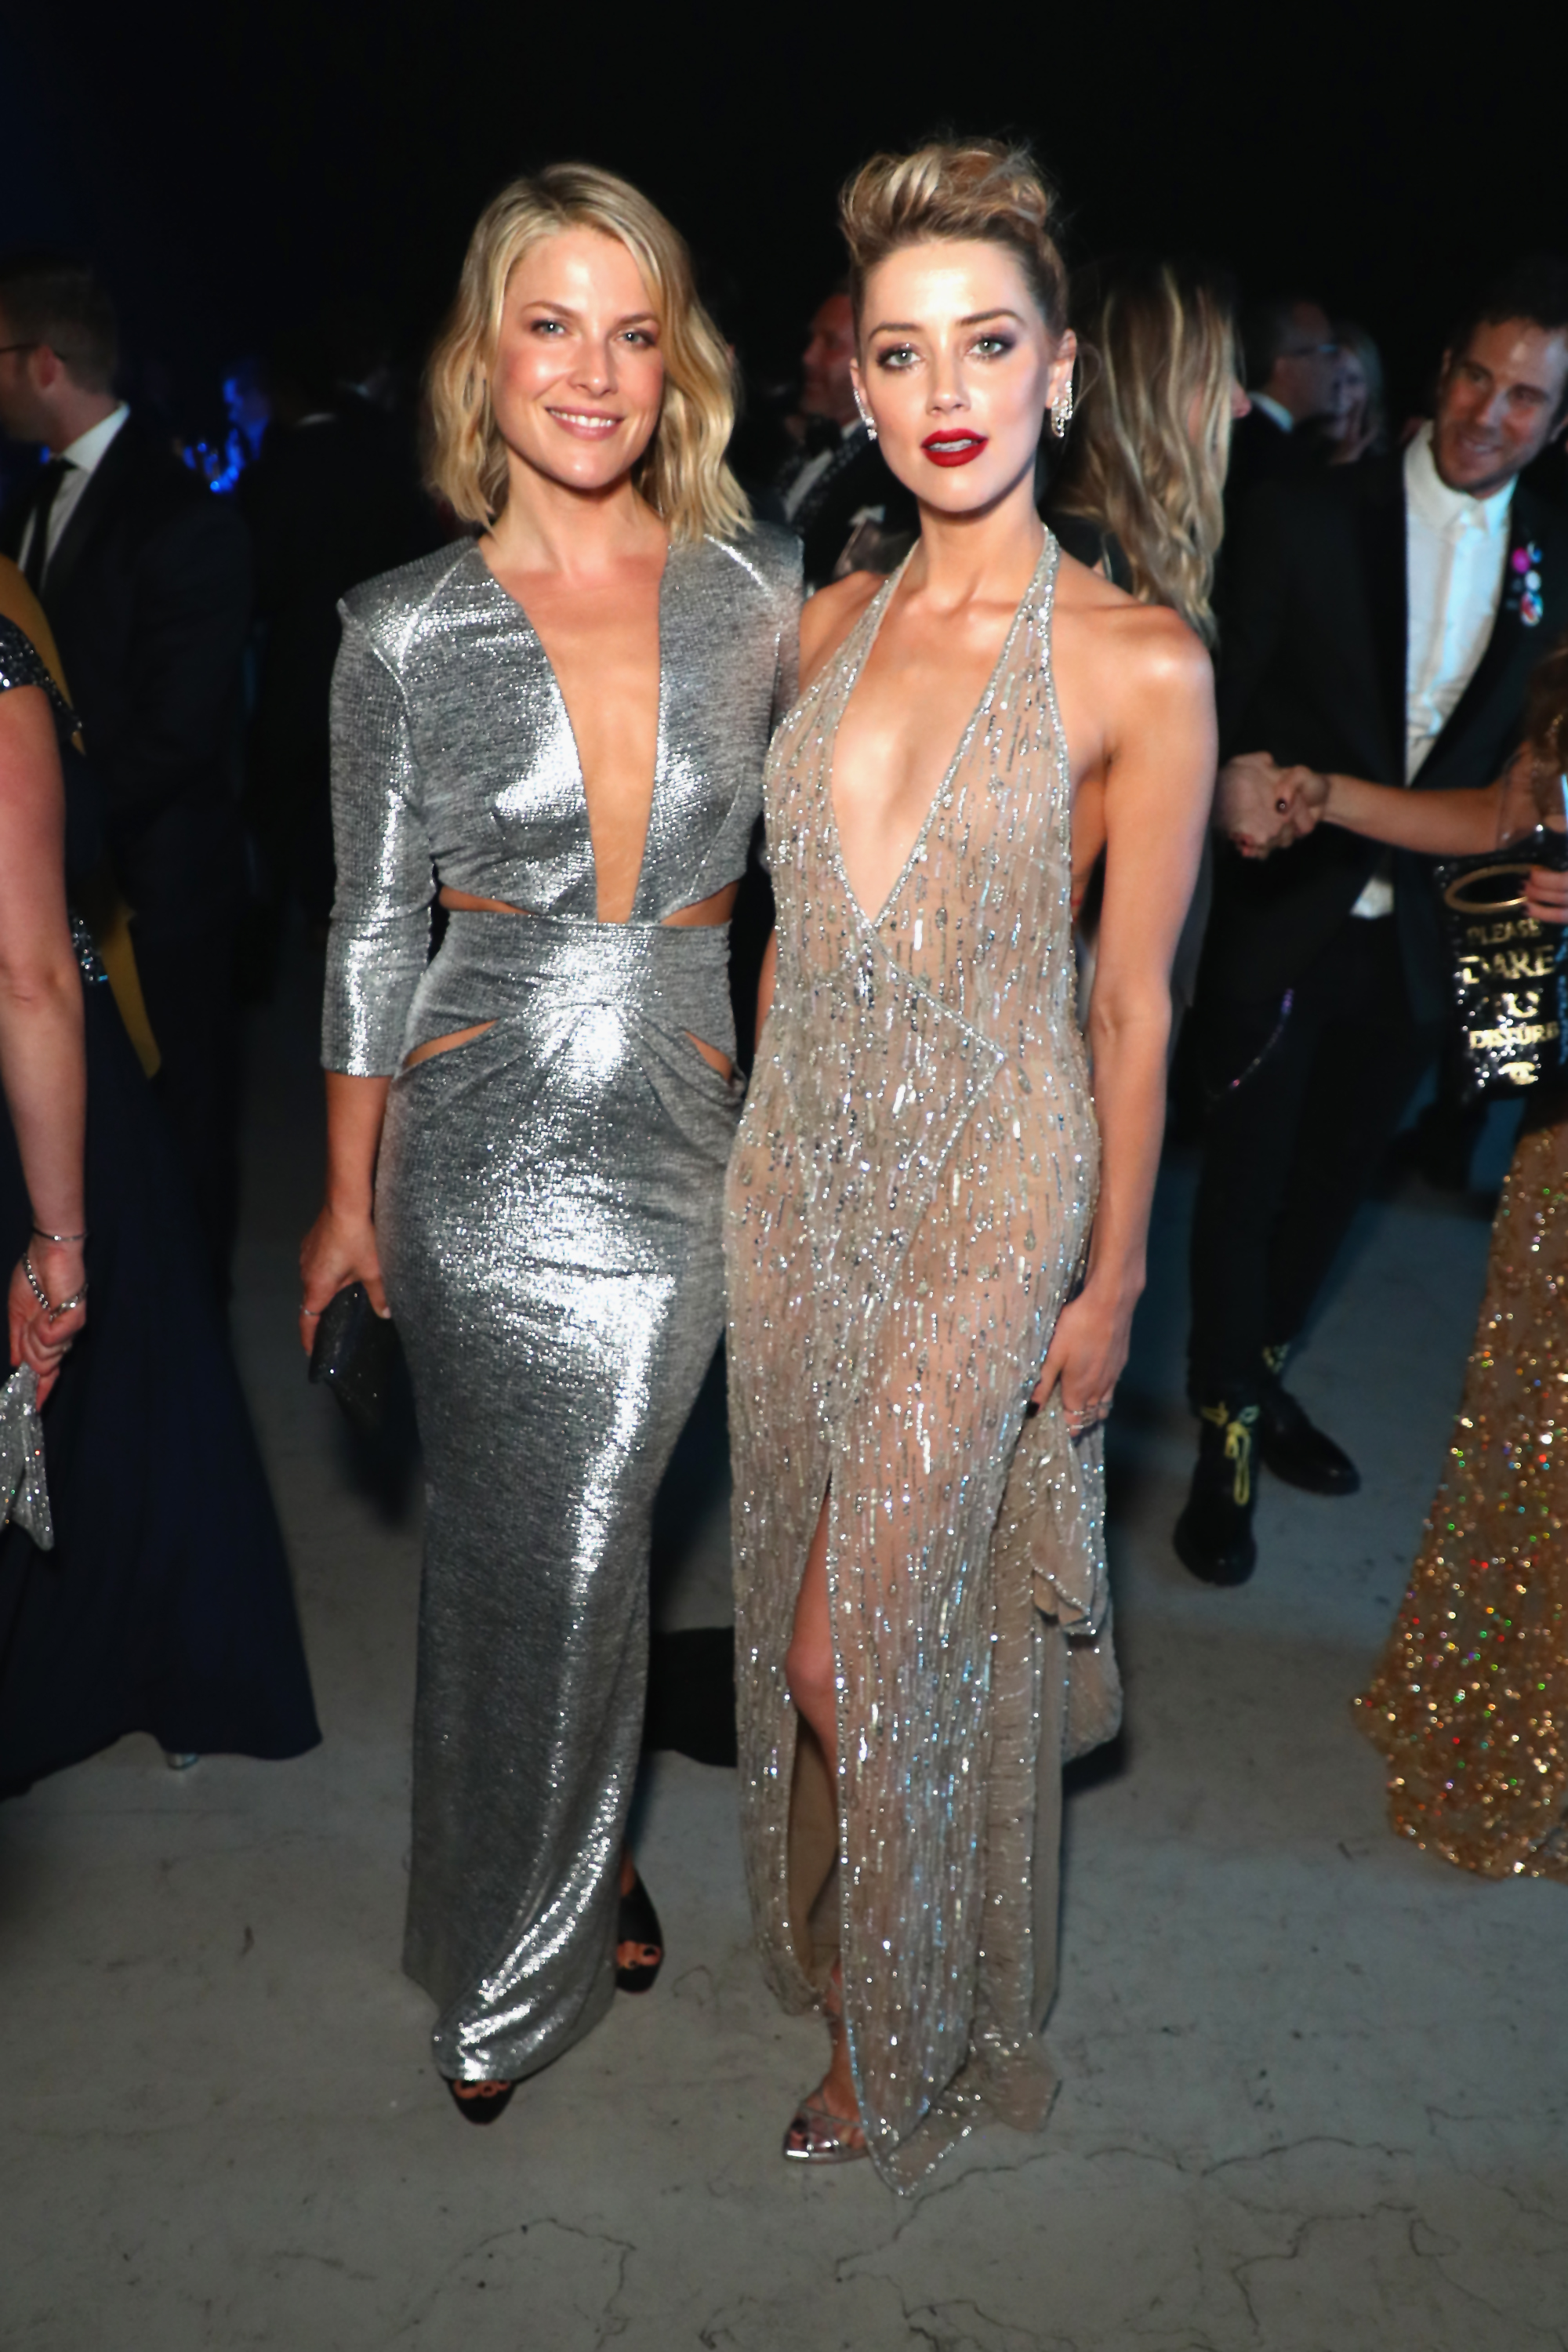 Ali Larter and Amber Heard attend the Moet Hennessy John Legend's HEAVEN with the Art of Elysium